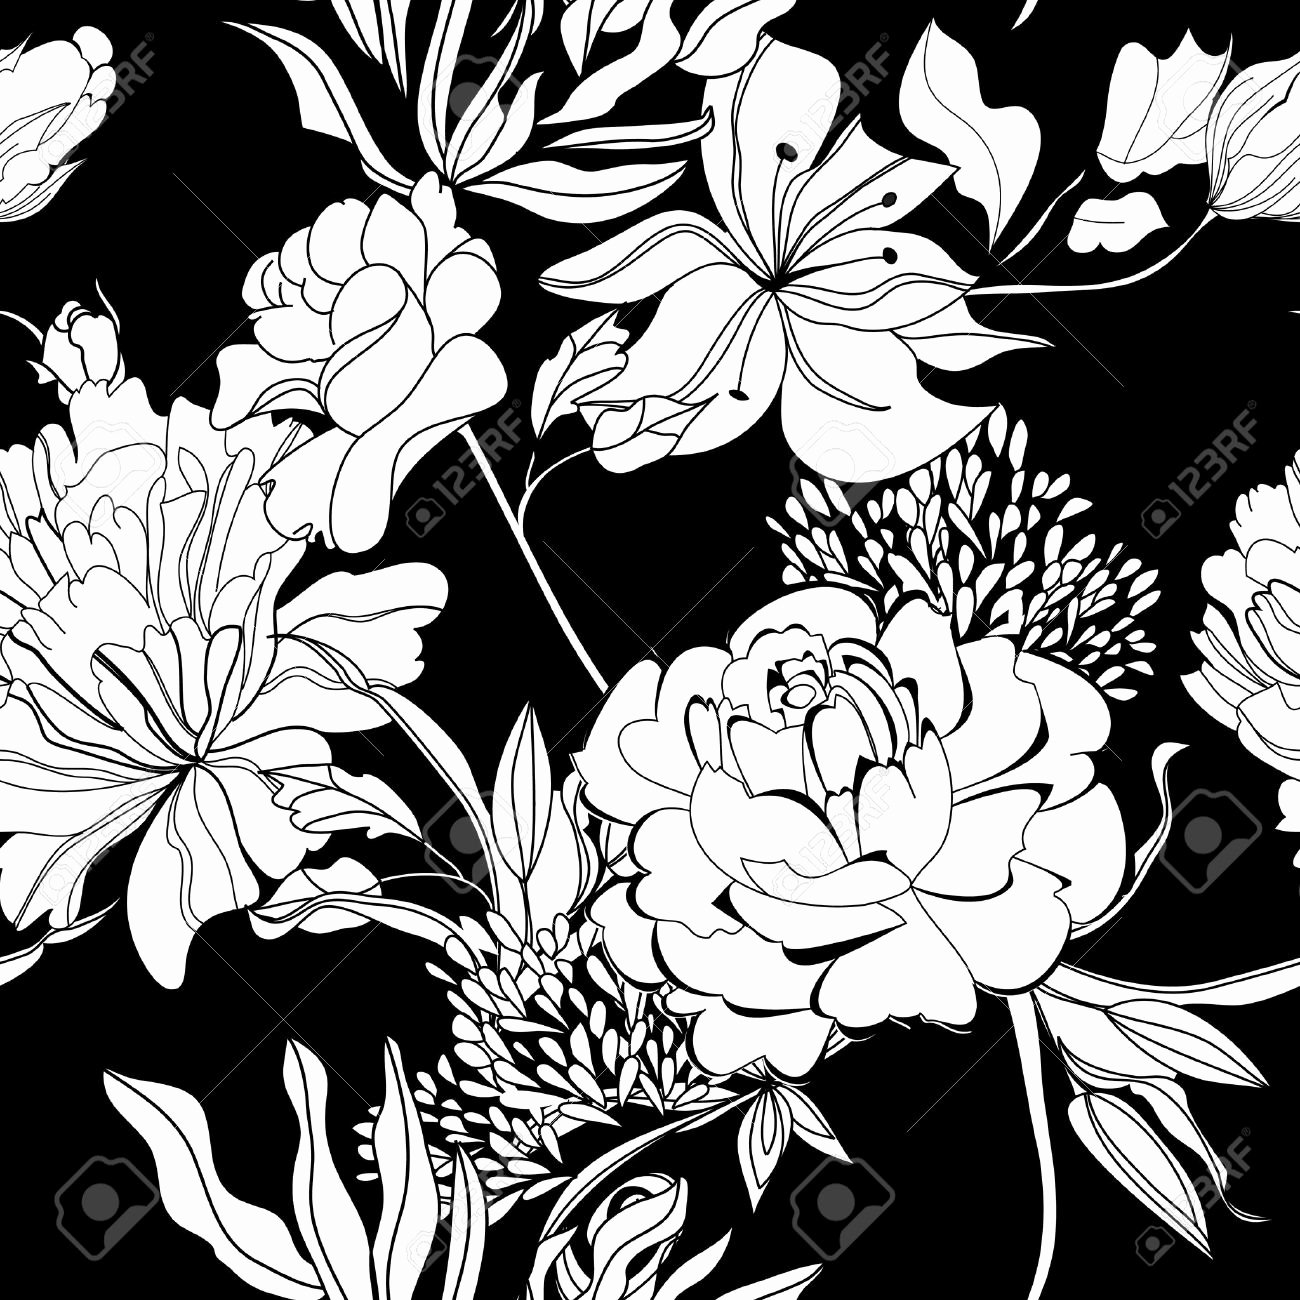 Black and White Flower Drawing Awesome Black and White Flowers Drawing at Getdrawings